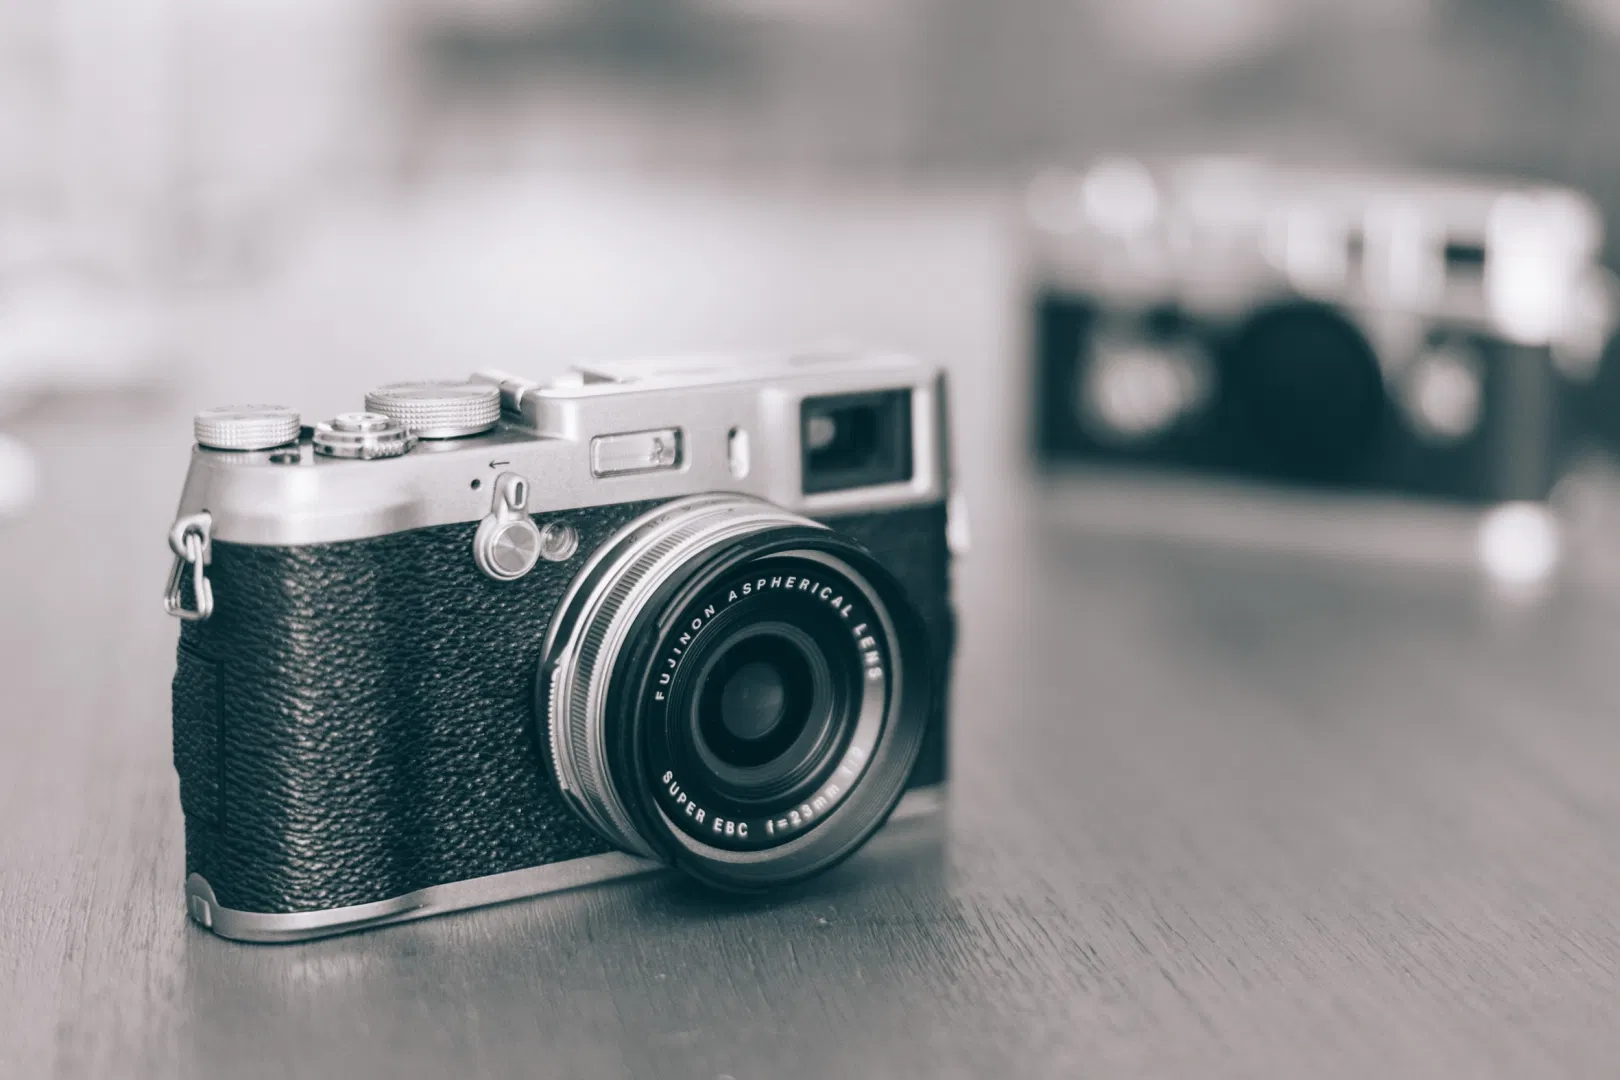 One of the Most Important Digital Cameras Turns 10 This Year